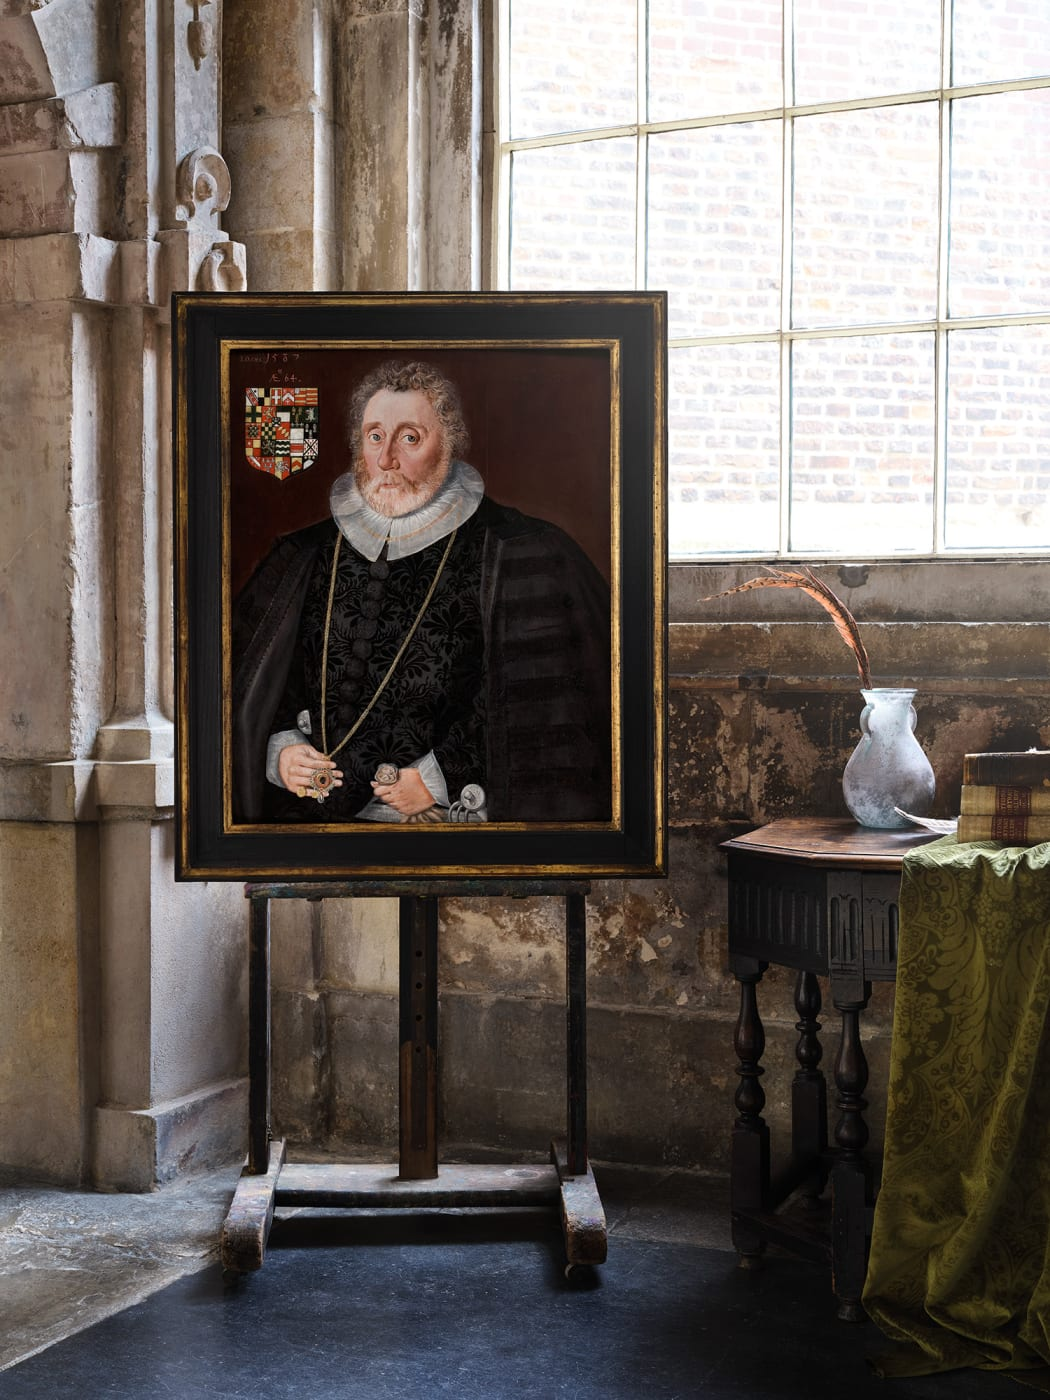 16th Century portrait by Robert Peake of a old man in black doublet at charter house